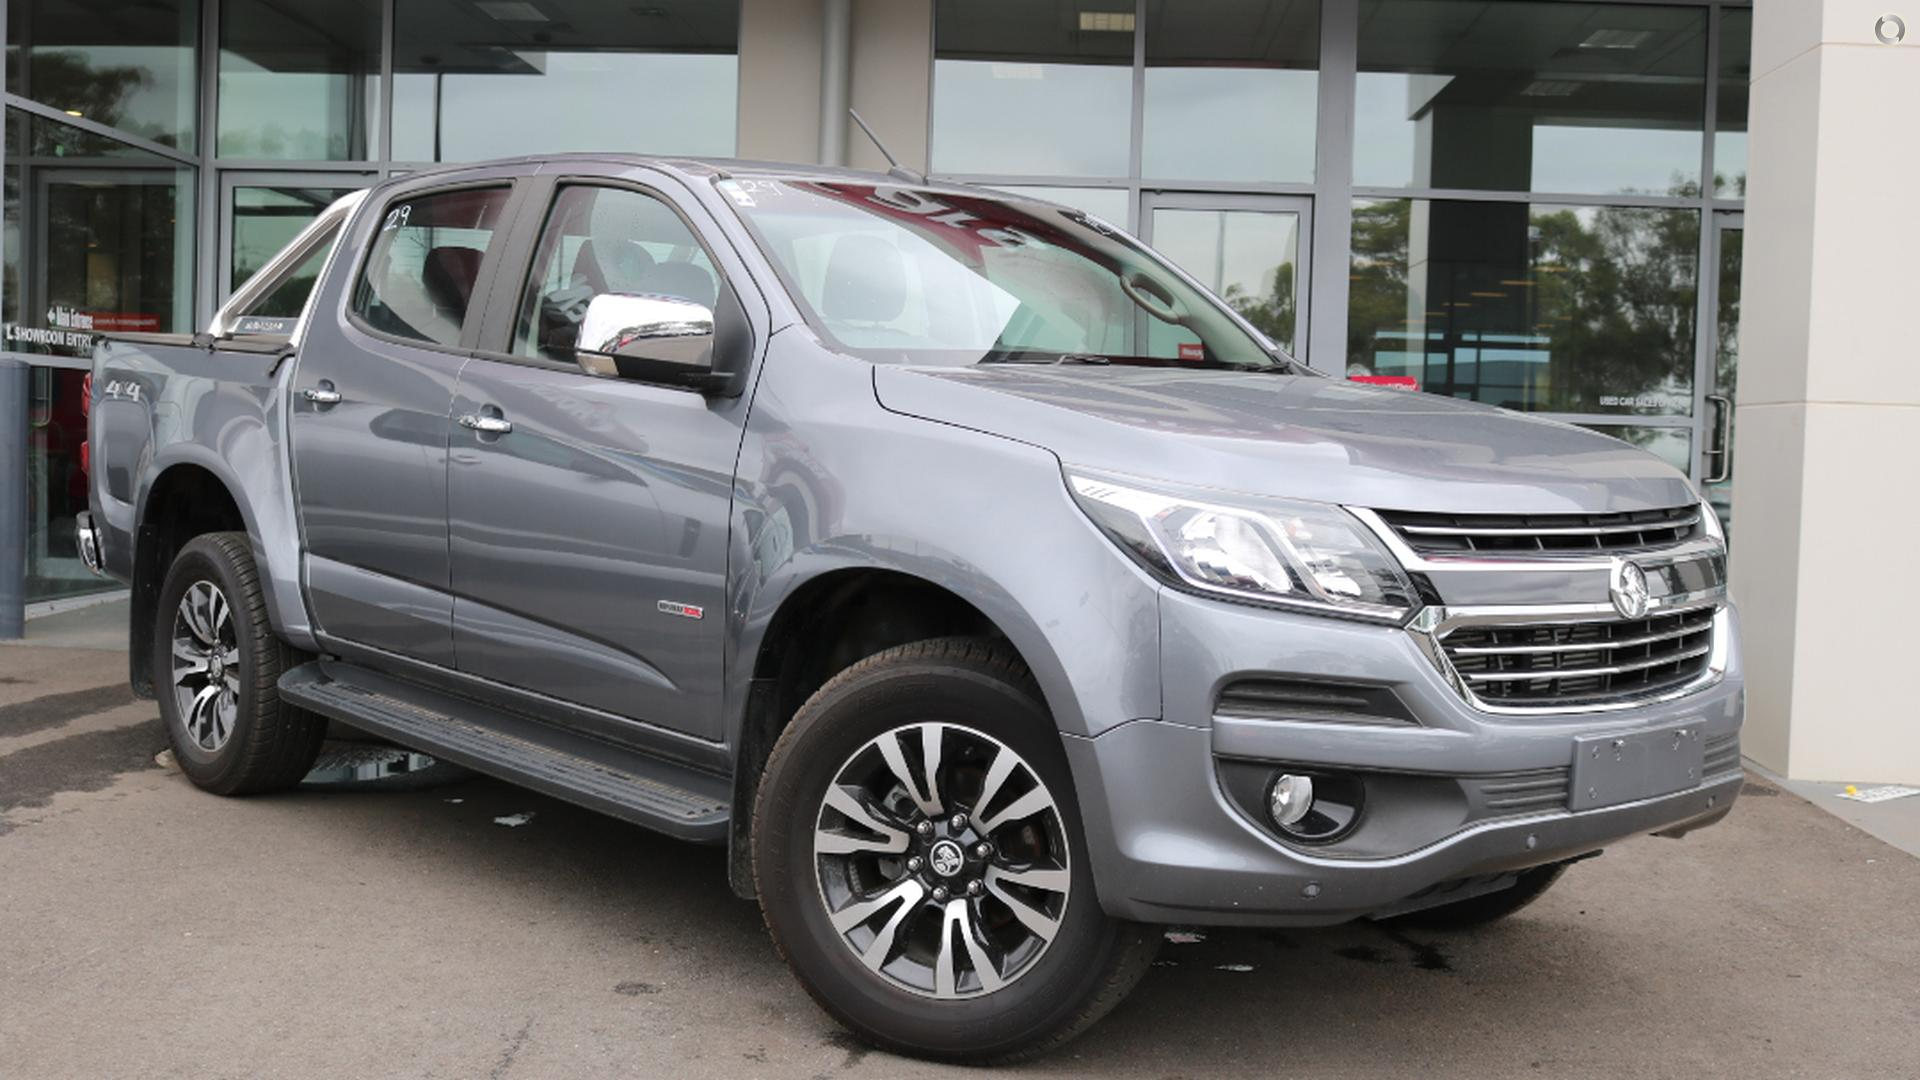 2016 Holden Colorado Ltz